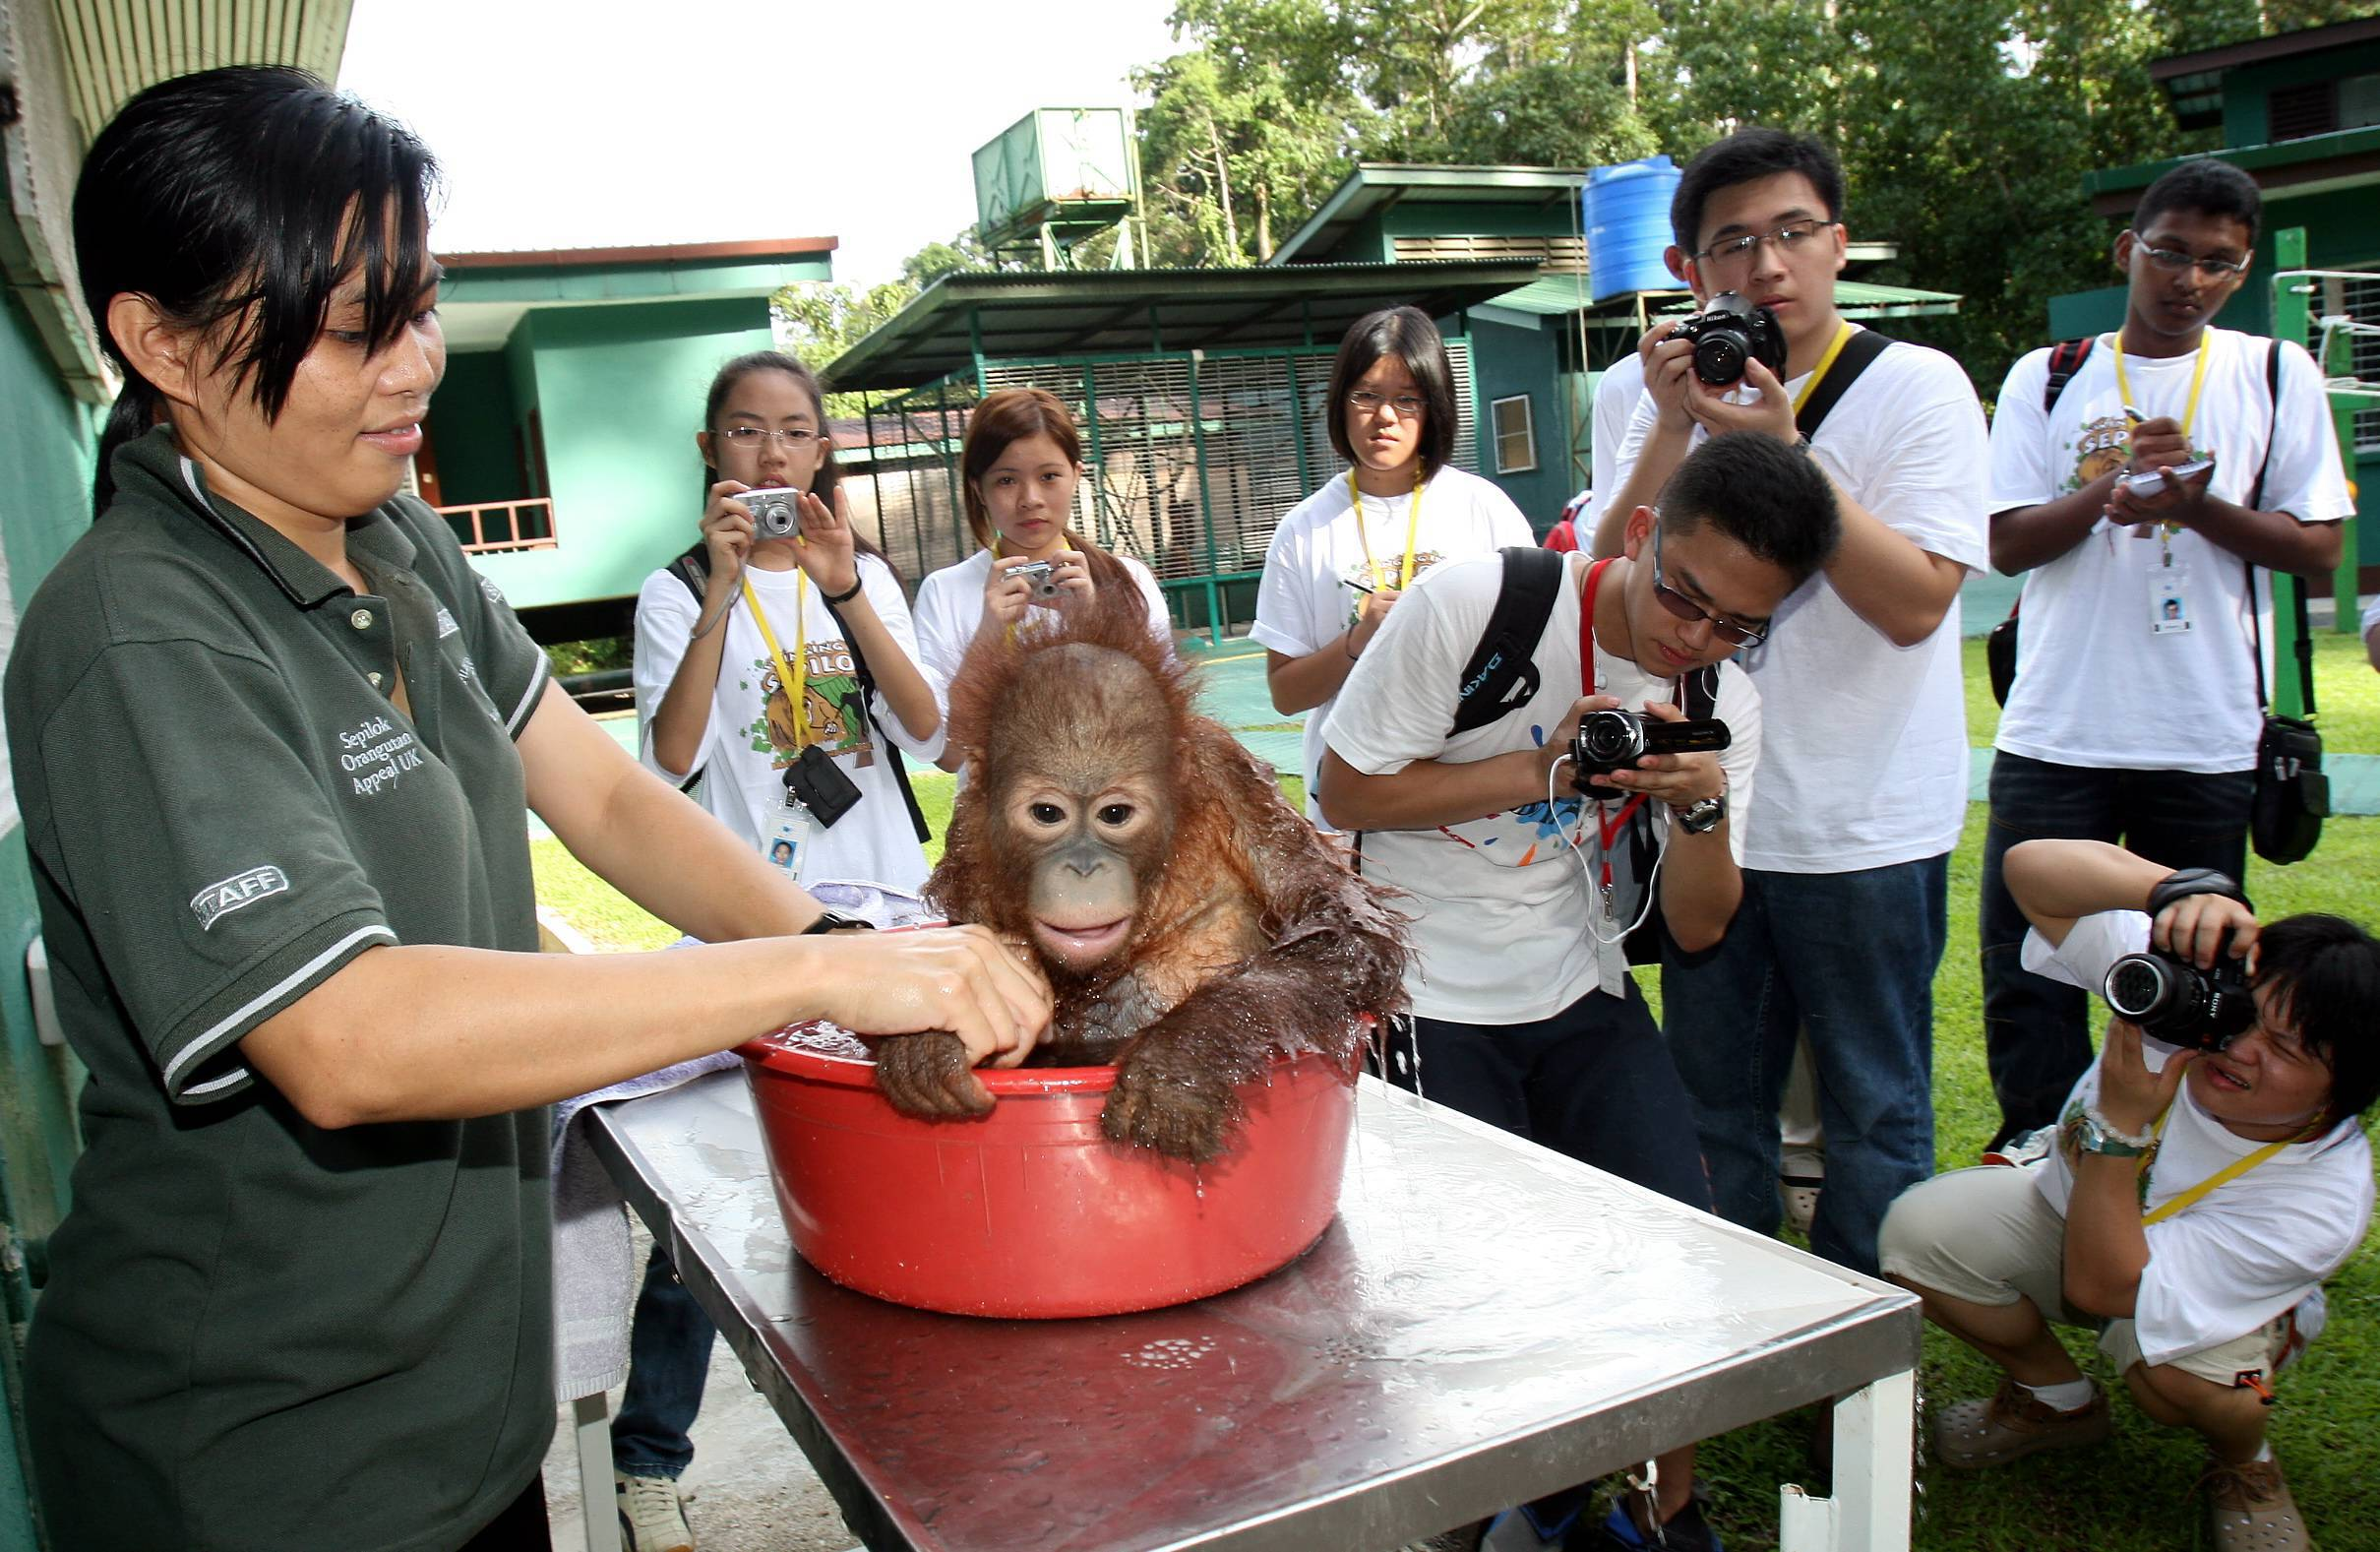 The BRATs watching closely as the young orang-utan took his daily bath. The BRATs were at the Sepilok Orang-utan Rehabilitation Centre as part of the Swinging in Sepilok BRATs year-end journey 2008.